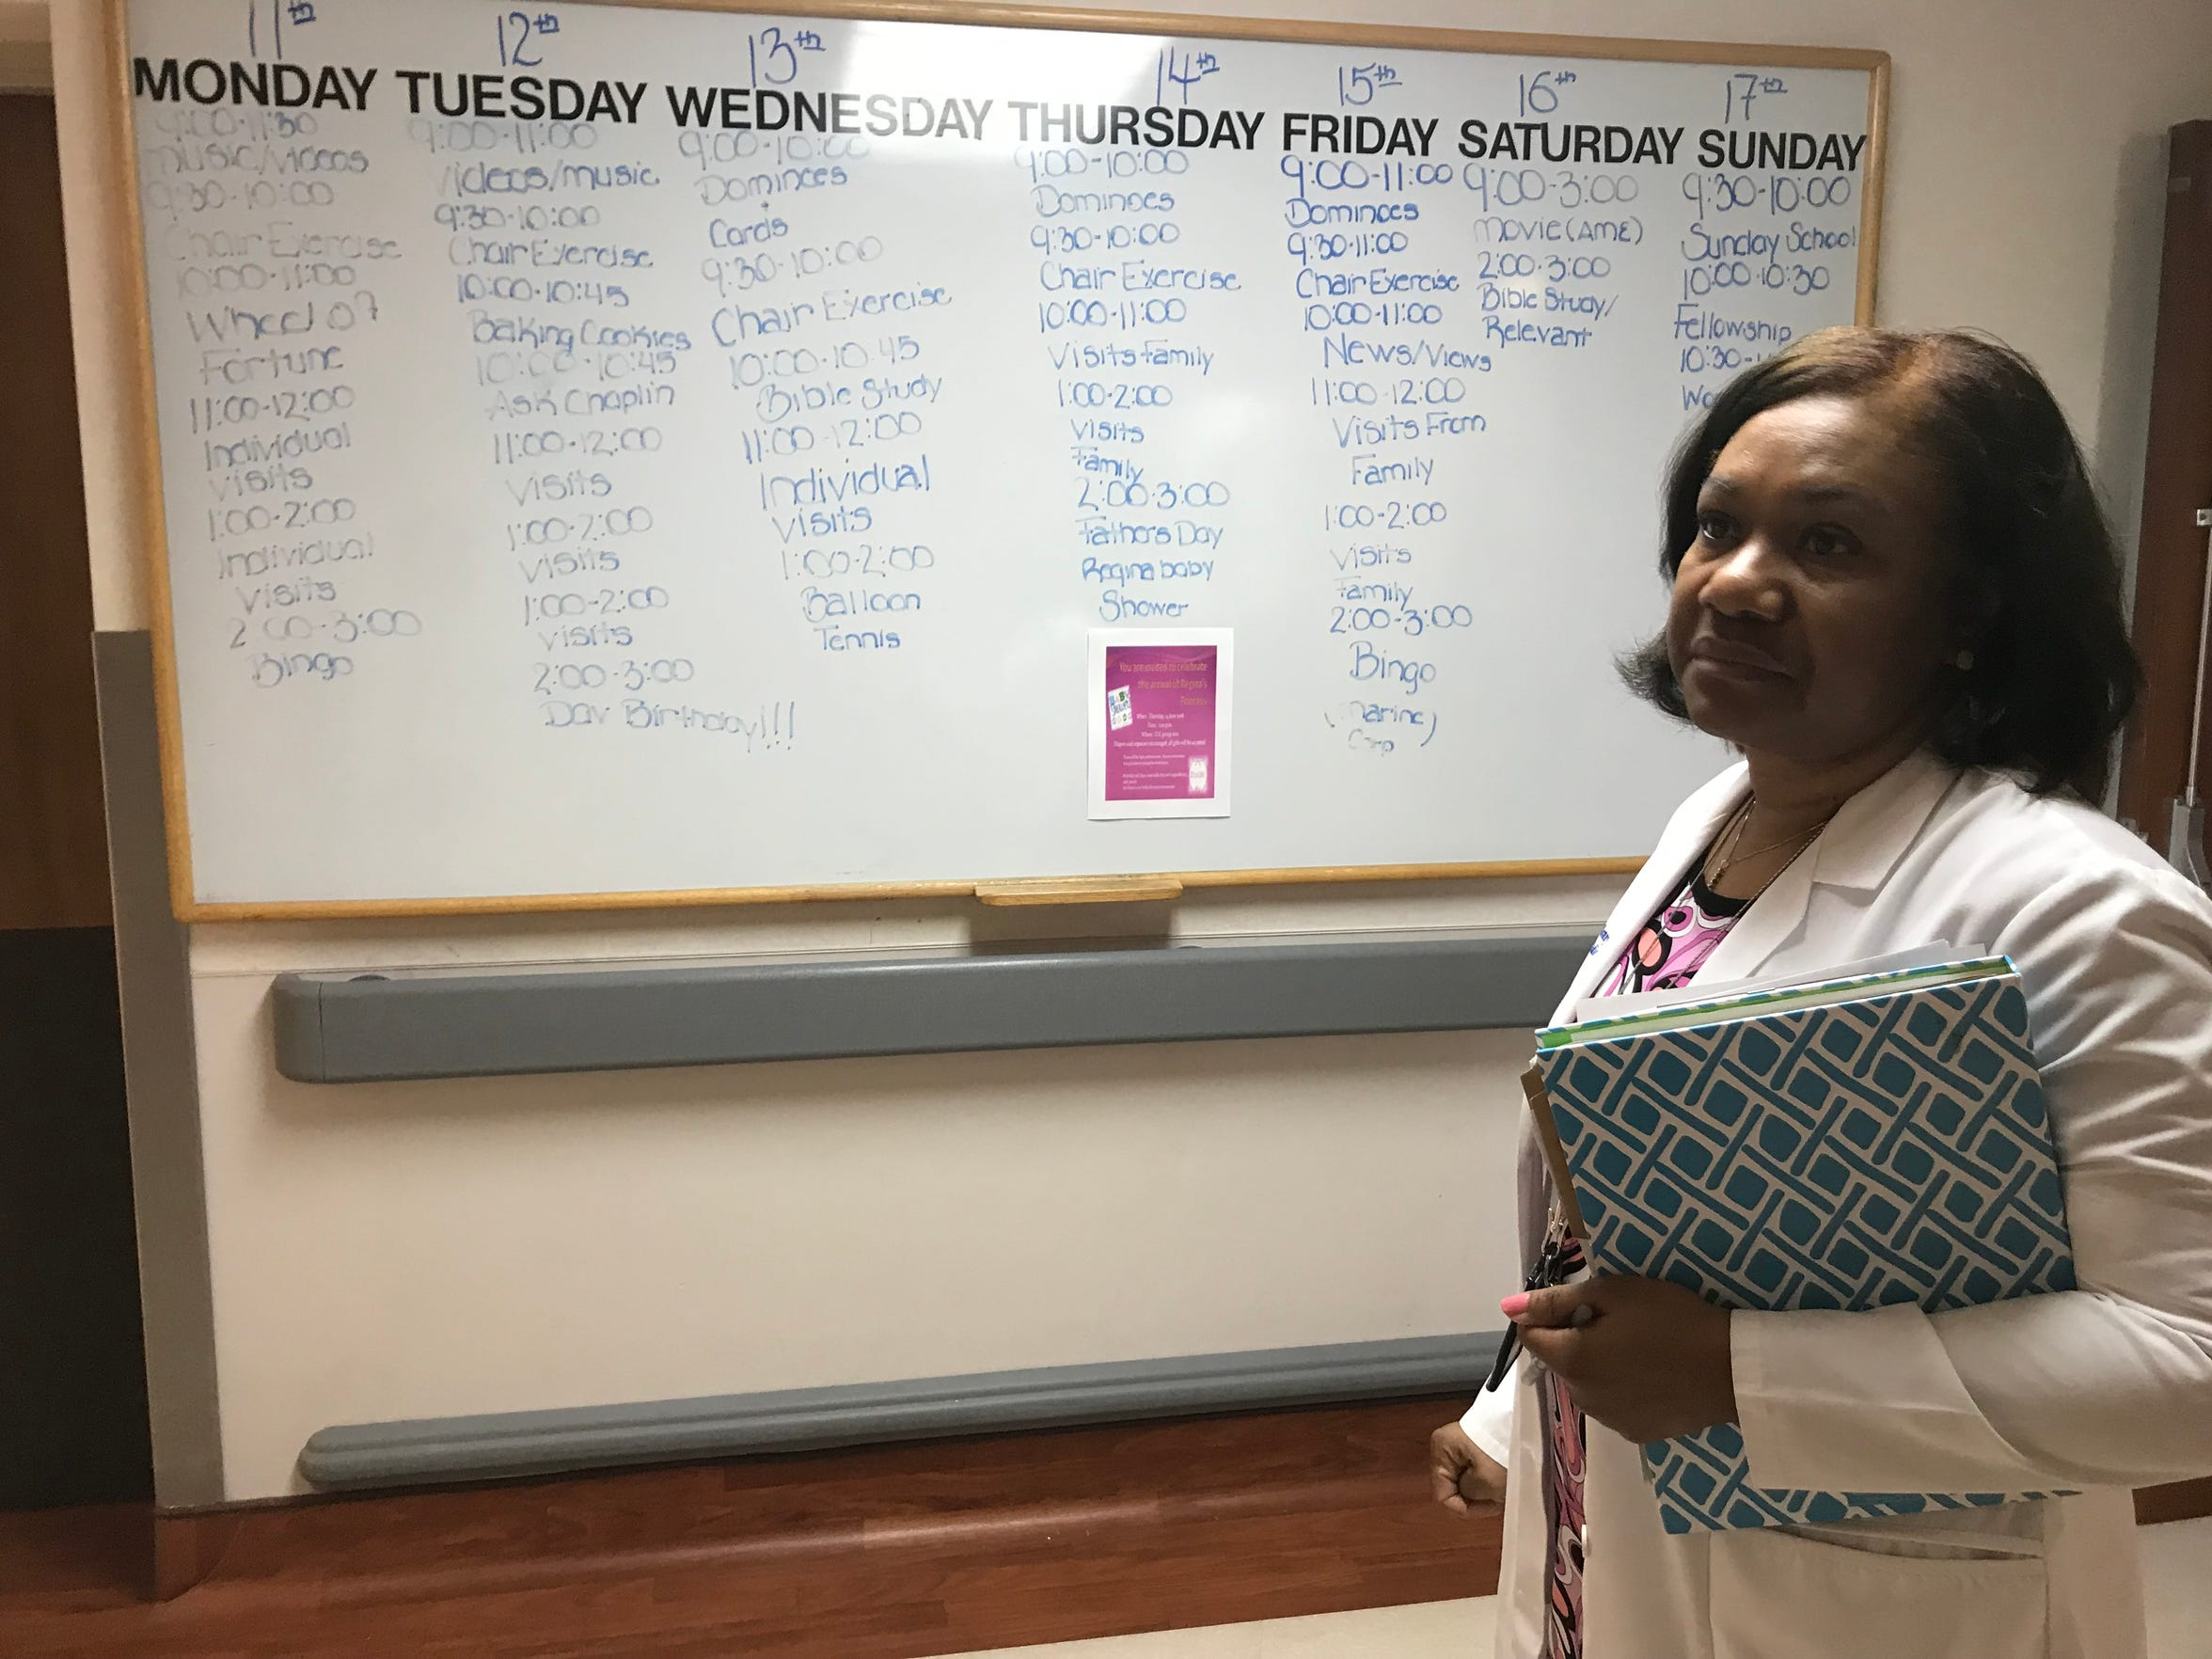 Lisa Bruce with the G.V. (Sonny) Montgomery VA Medical Center walks through the community living center where a large whiteboard displays the residents' schedule. The facility is one of 133 VA-operated nursing homes across the country.